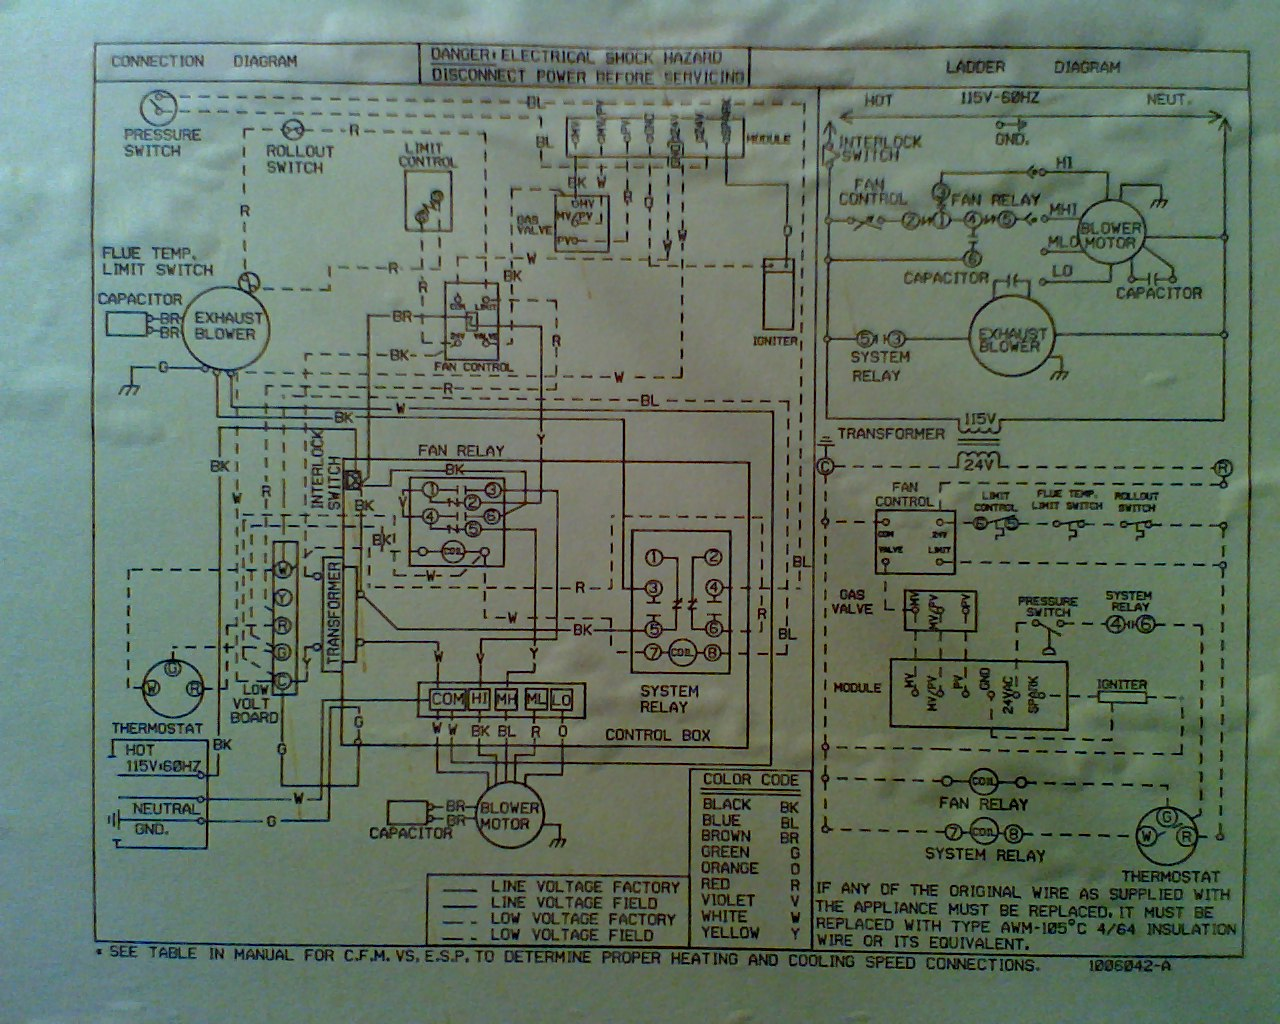 2009 11 20_231603_1120091711a air conditioner y wire grihon com ac, coolers & devices tempstar 2200 air conditioner wiring diagram at alyssarenee.co